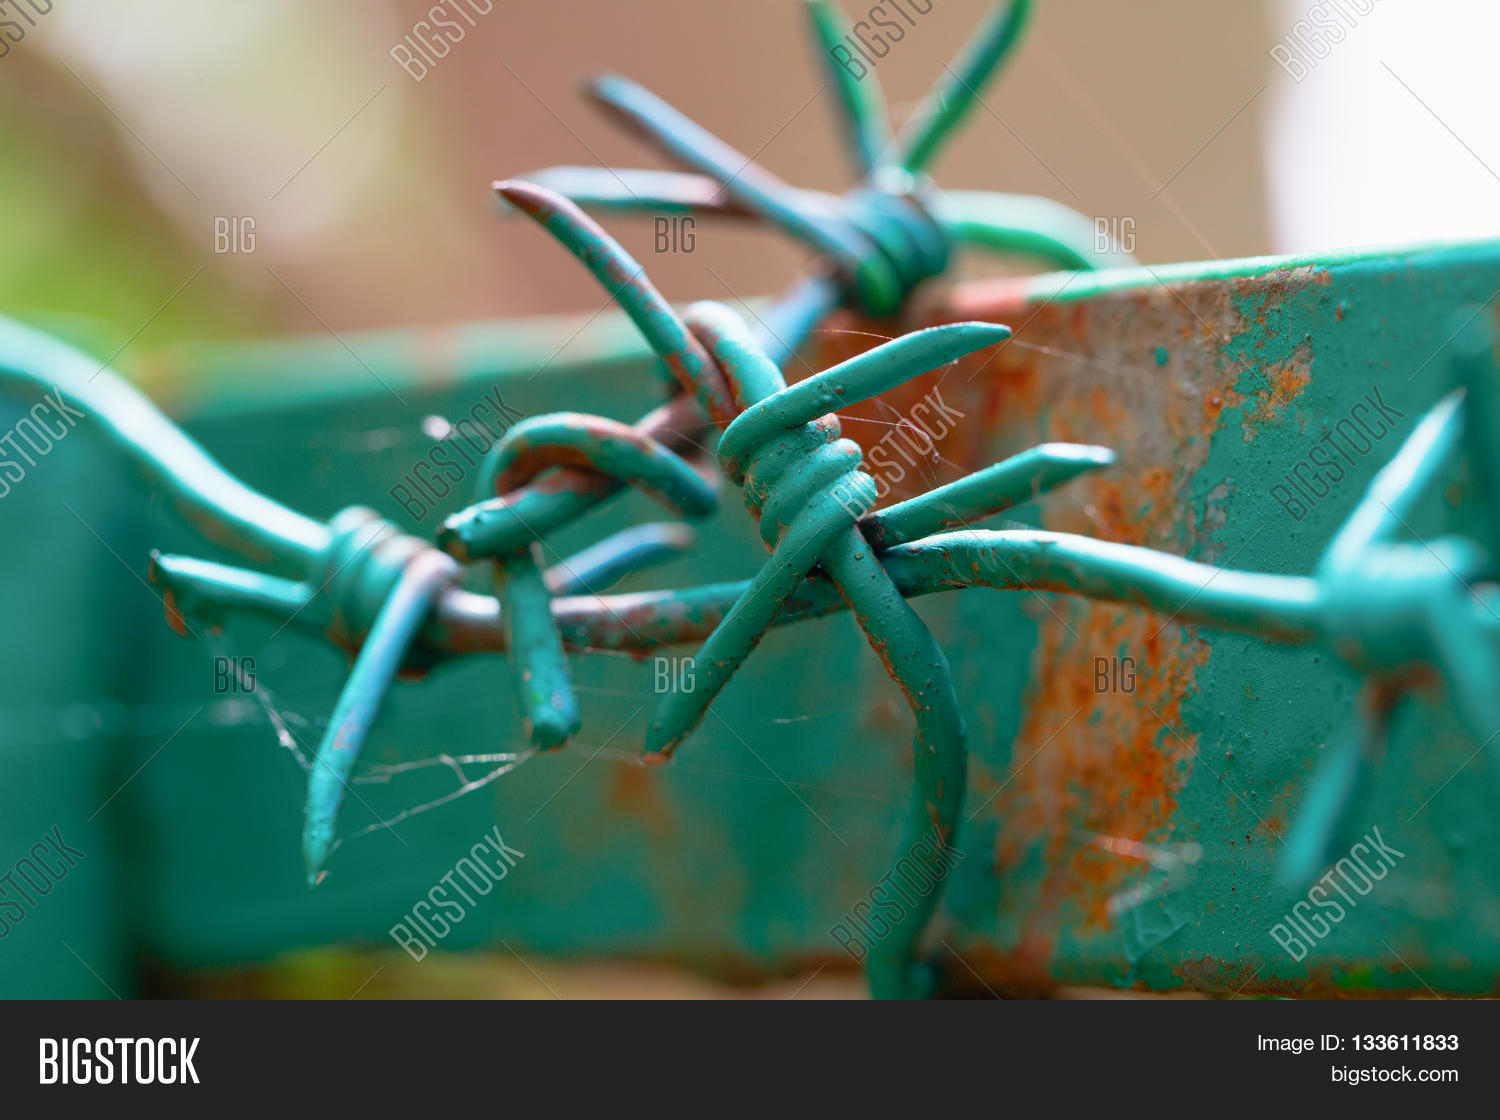 Barbed Wire On Top Image & Photo (Free Trial) | Bigstock